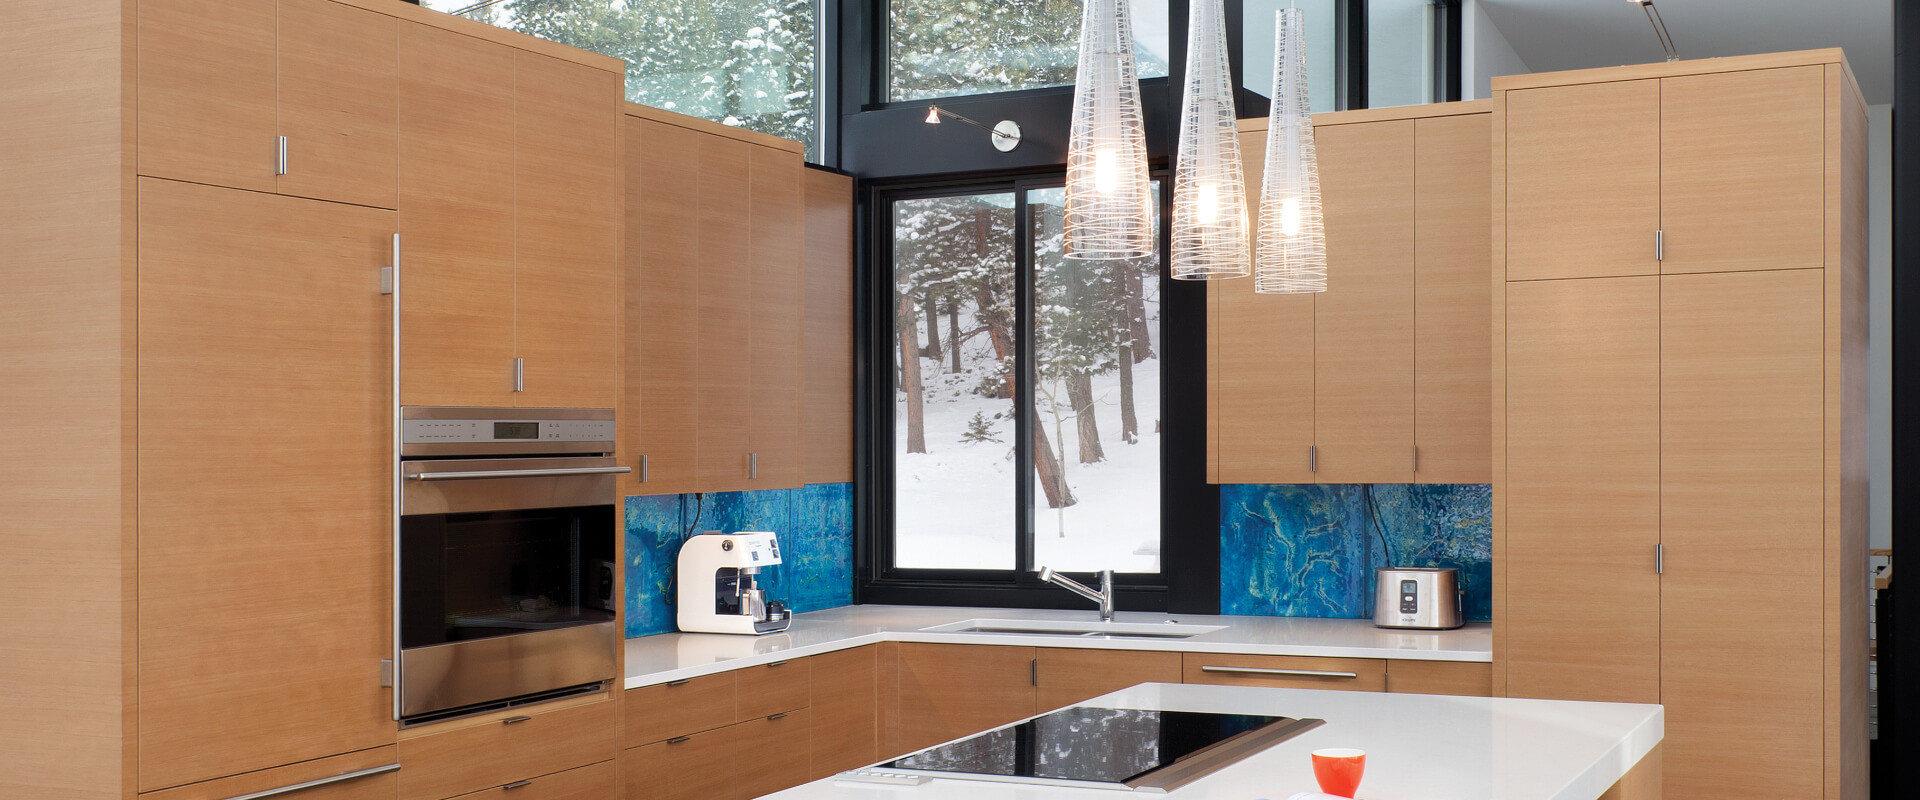 VistaLuxe Double Sliding Window interior contemporary kitchen Winter